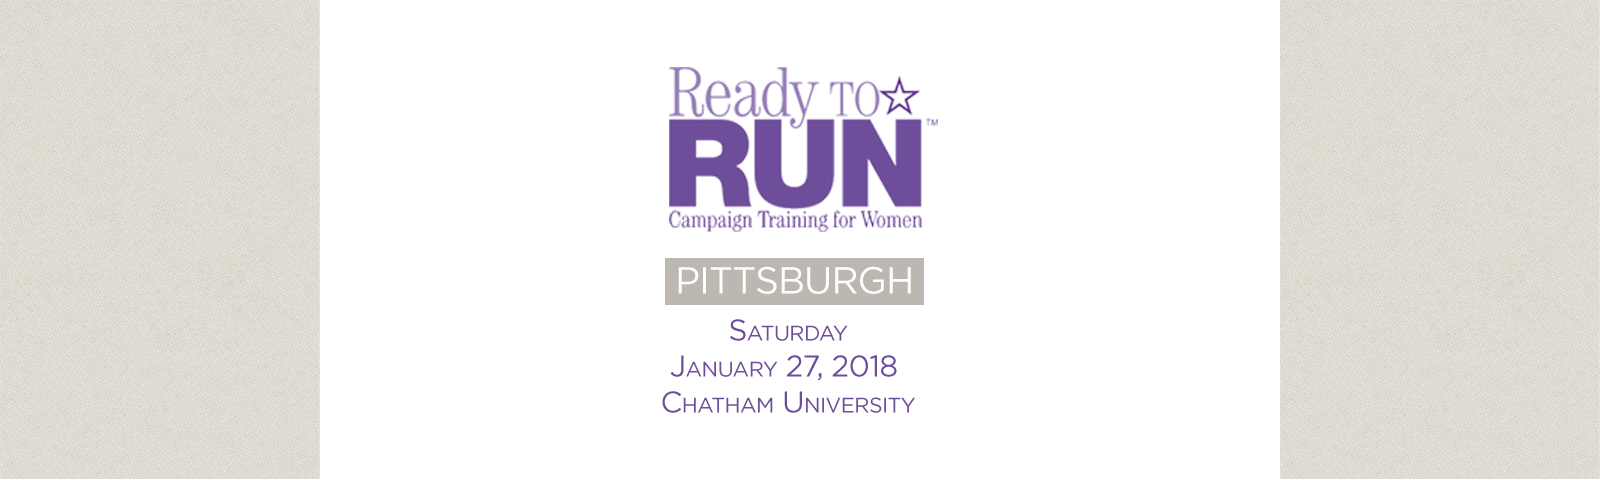 Ready to Run | Pittsburgh